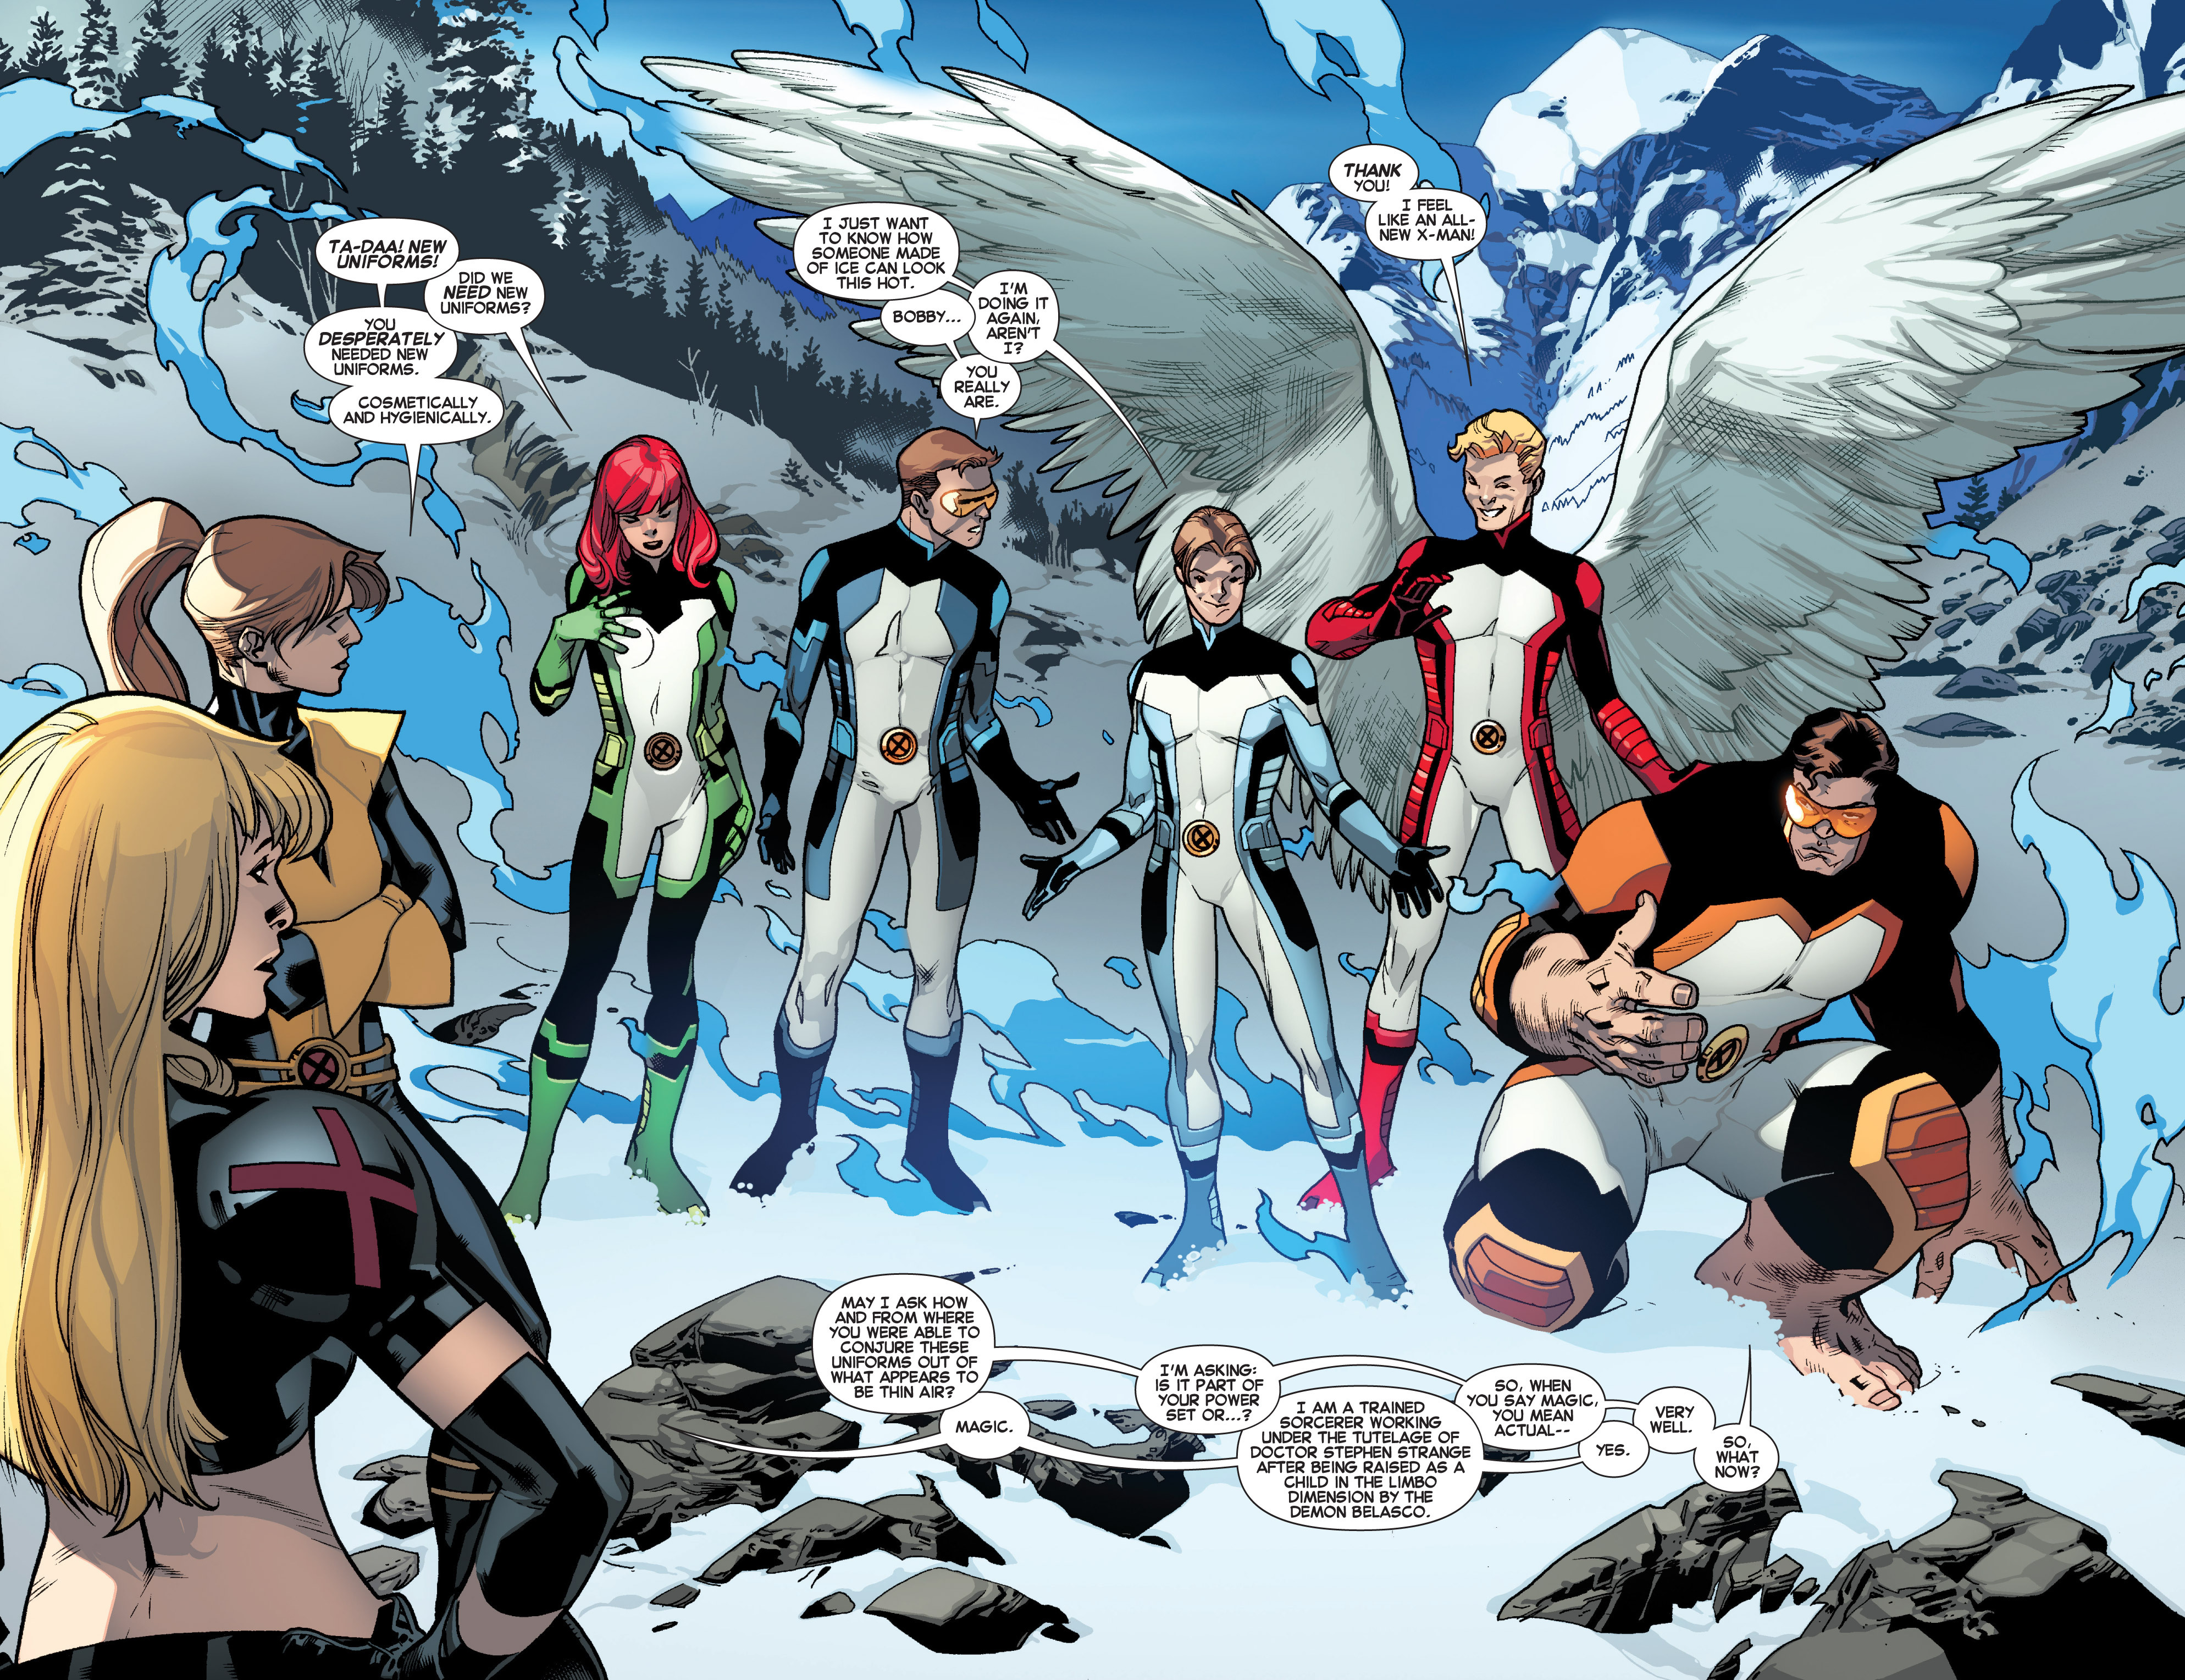 Read online All-New X-Men (2013) comic -  Issue # _Special - All-Different - 16